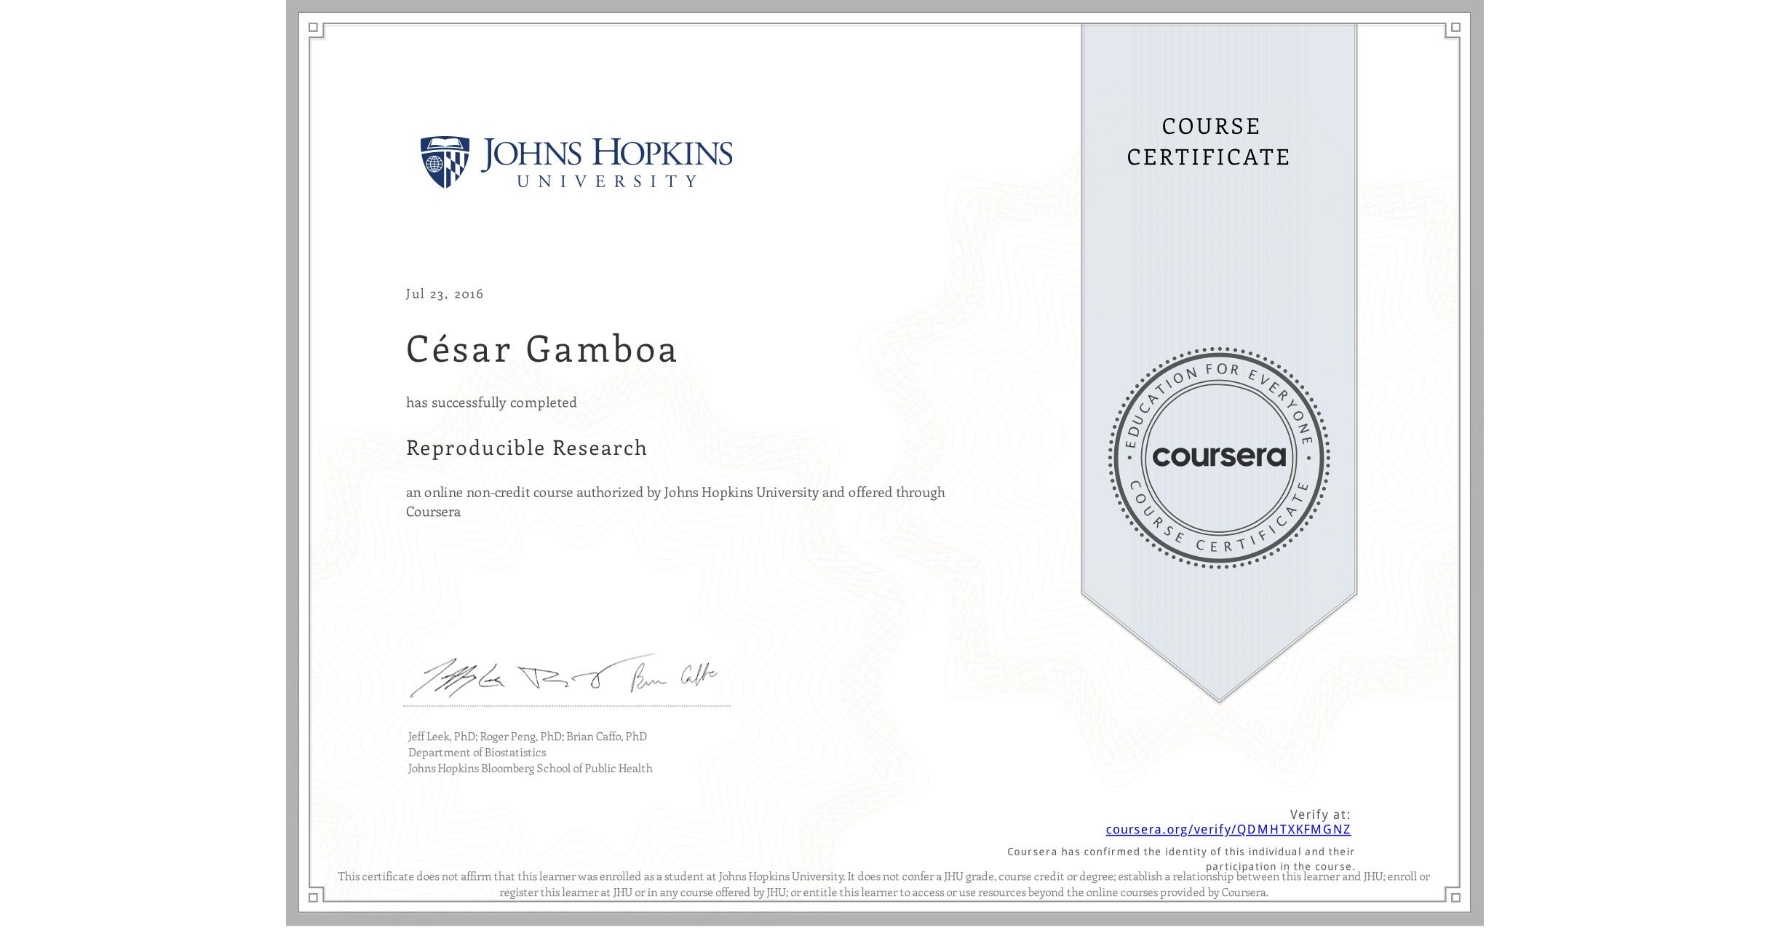 View certificate for César Gamboa, Reproducible Research, an online non-credit course authorized by Johns Hopkins University and offered through Coursera